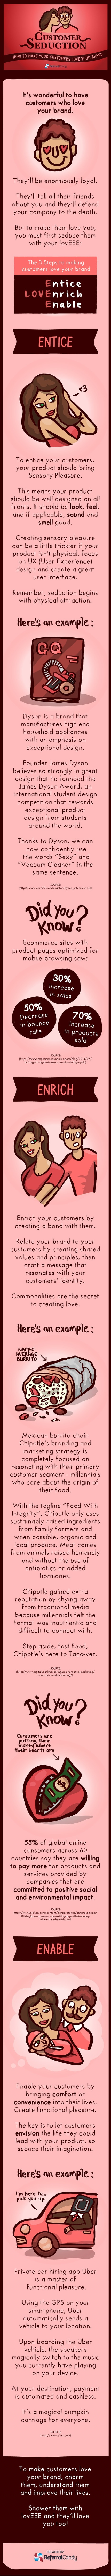 Customer Seduction: How to make customers LOVE your brand [Infographic] - Customer Acquisition and Referral Marketing blog | Start-Up & Growth Hacking Tips | Scoop.it